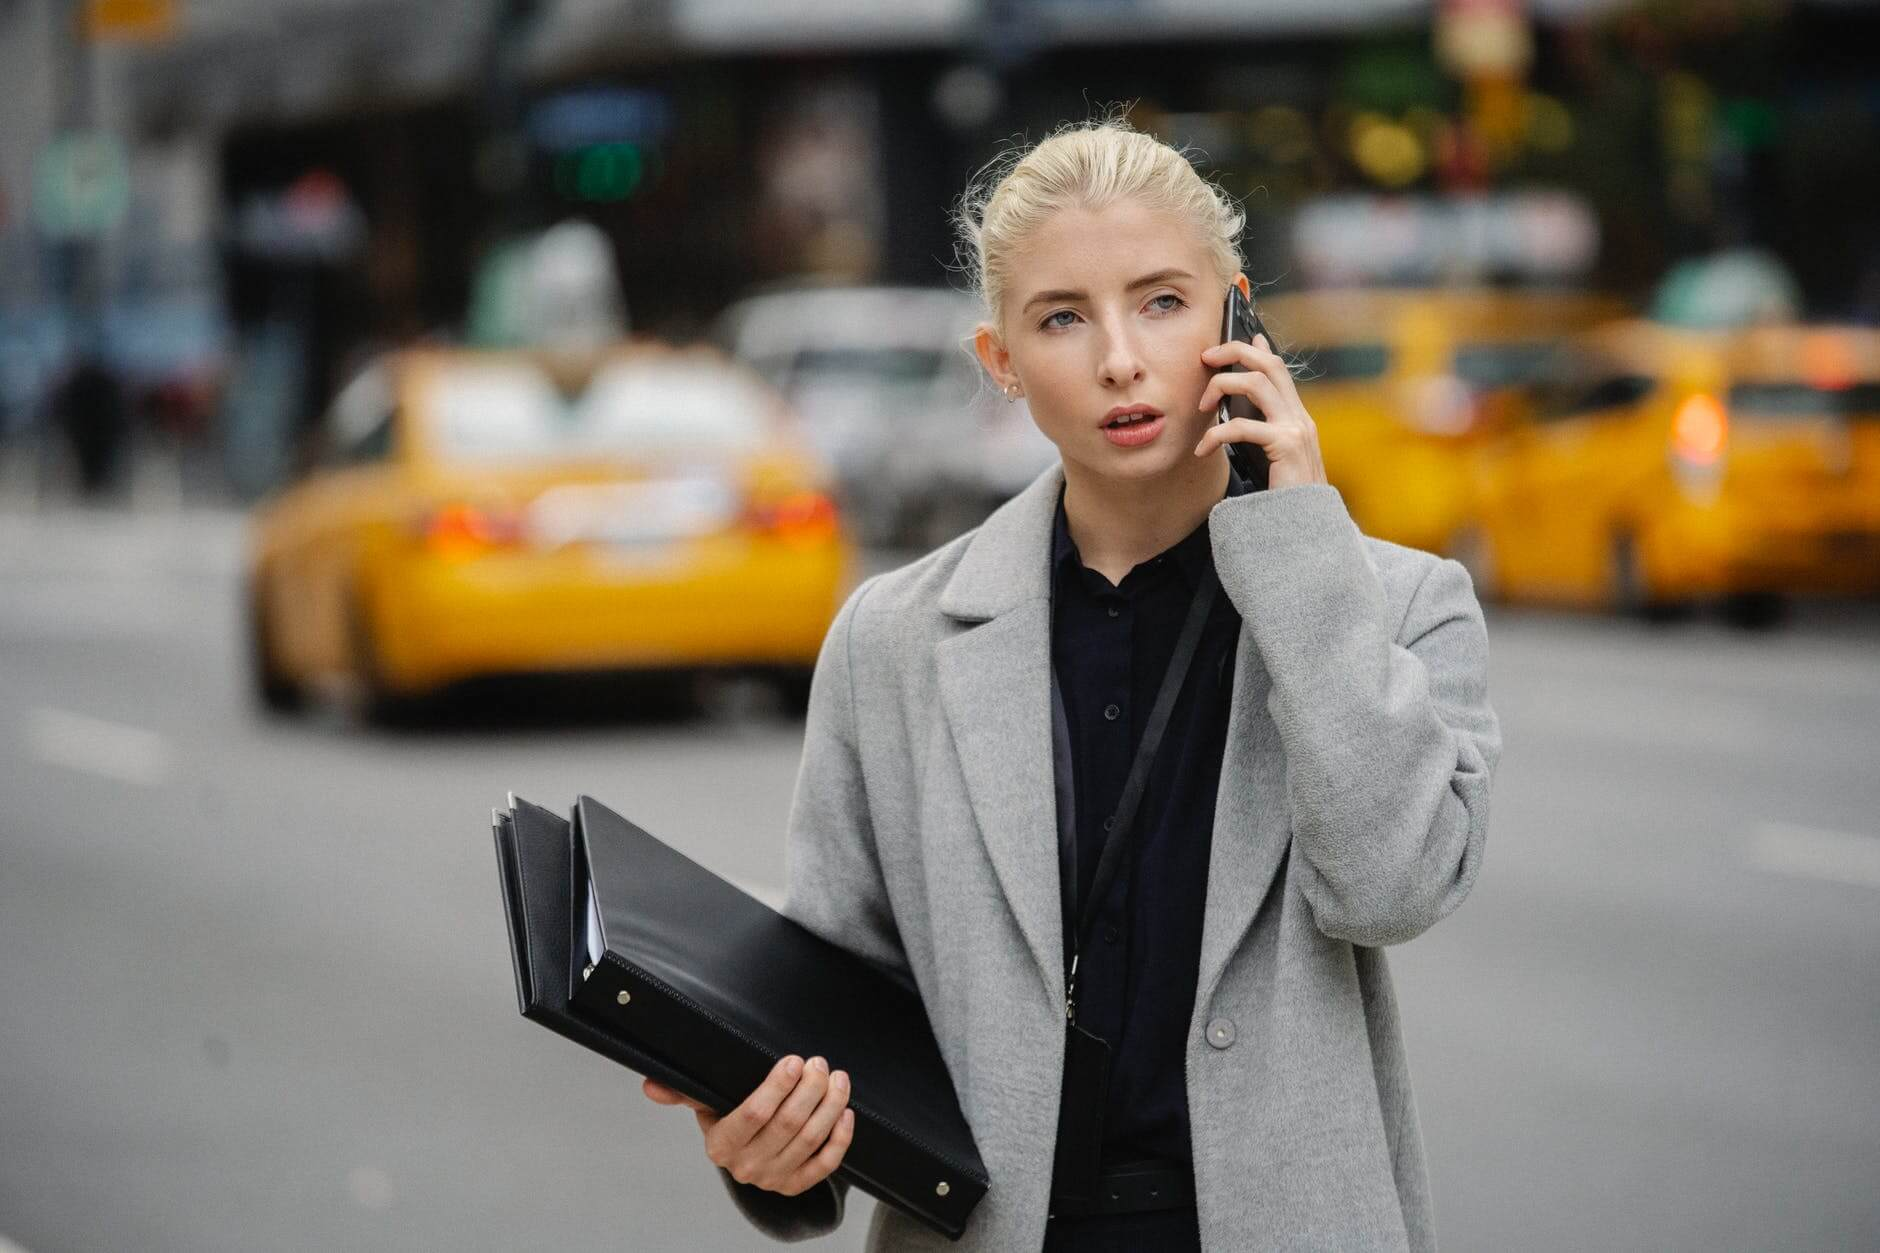 concentrated businesswoman talking on smartphone on street